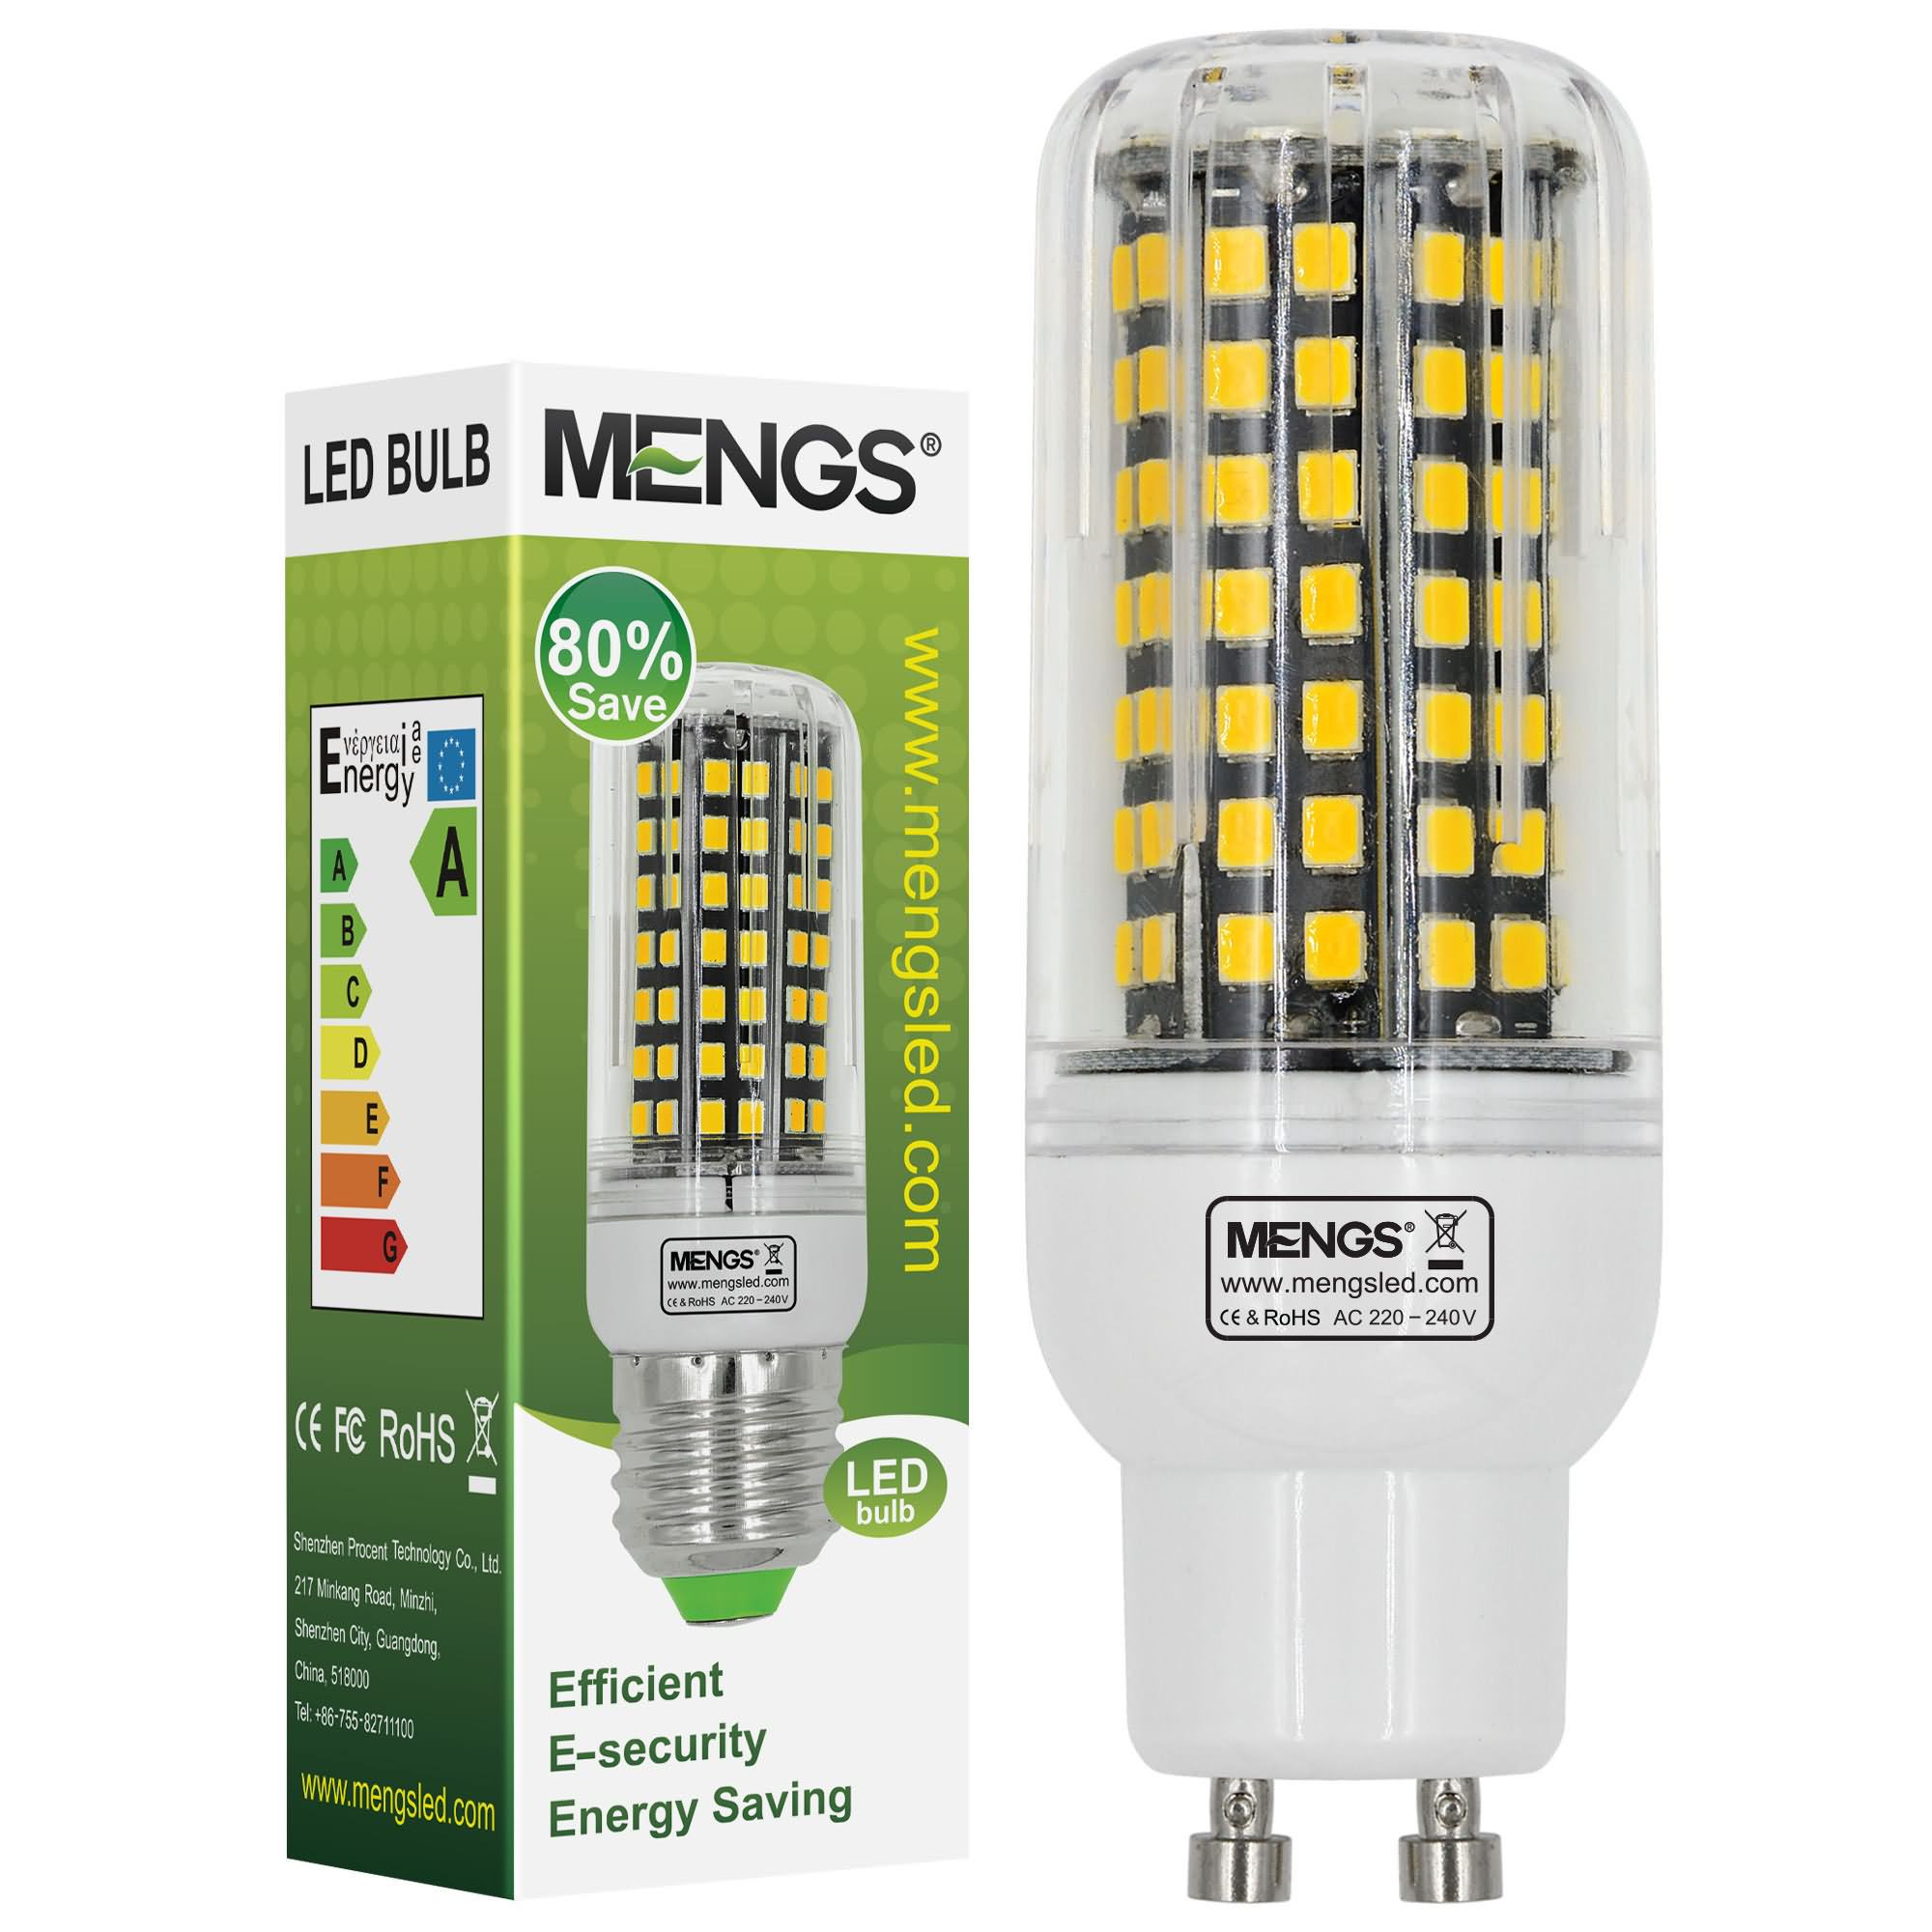 MENGS® GU10 10W LED Corn Light 112x 2835 SMD LED Bulb Lamp With Aluminum Plate In Warm White Energy-Saving Light